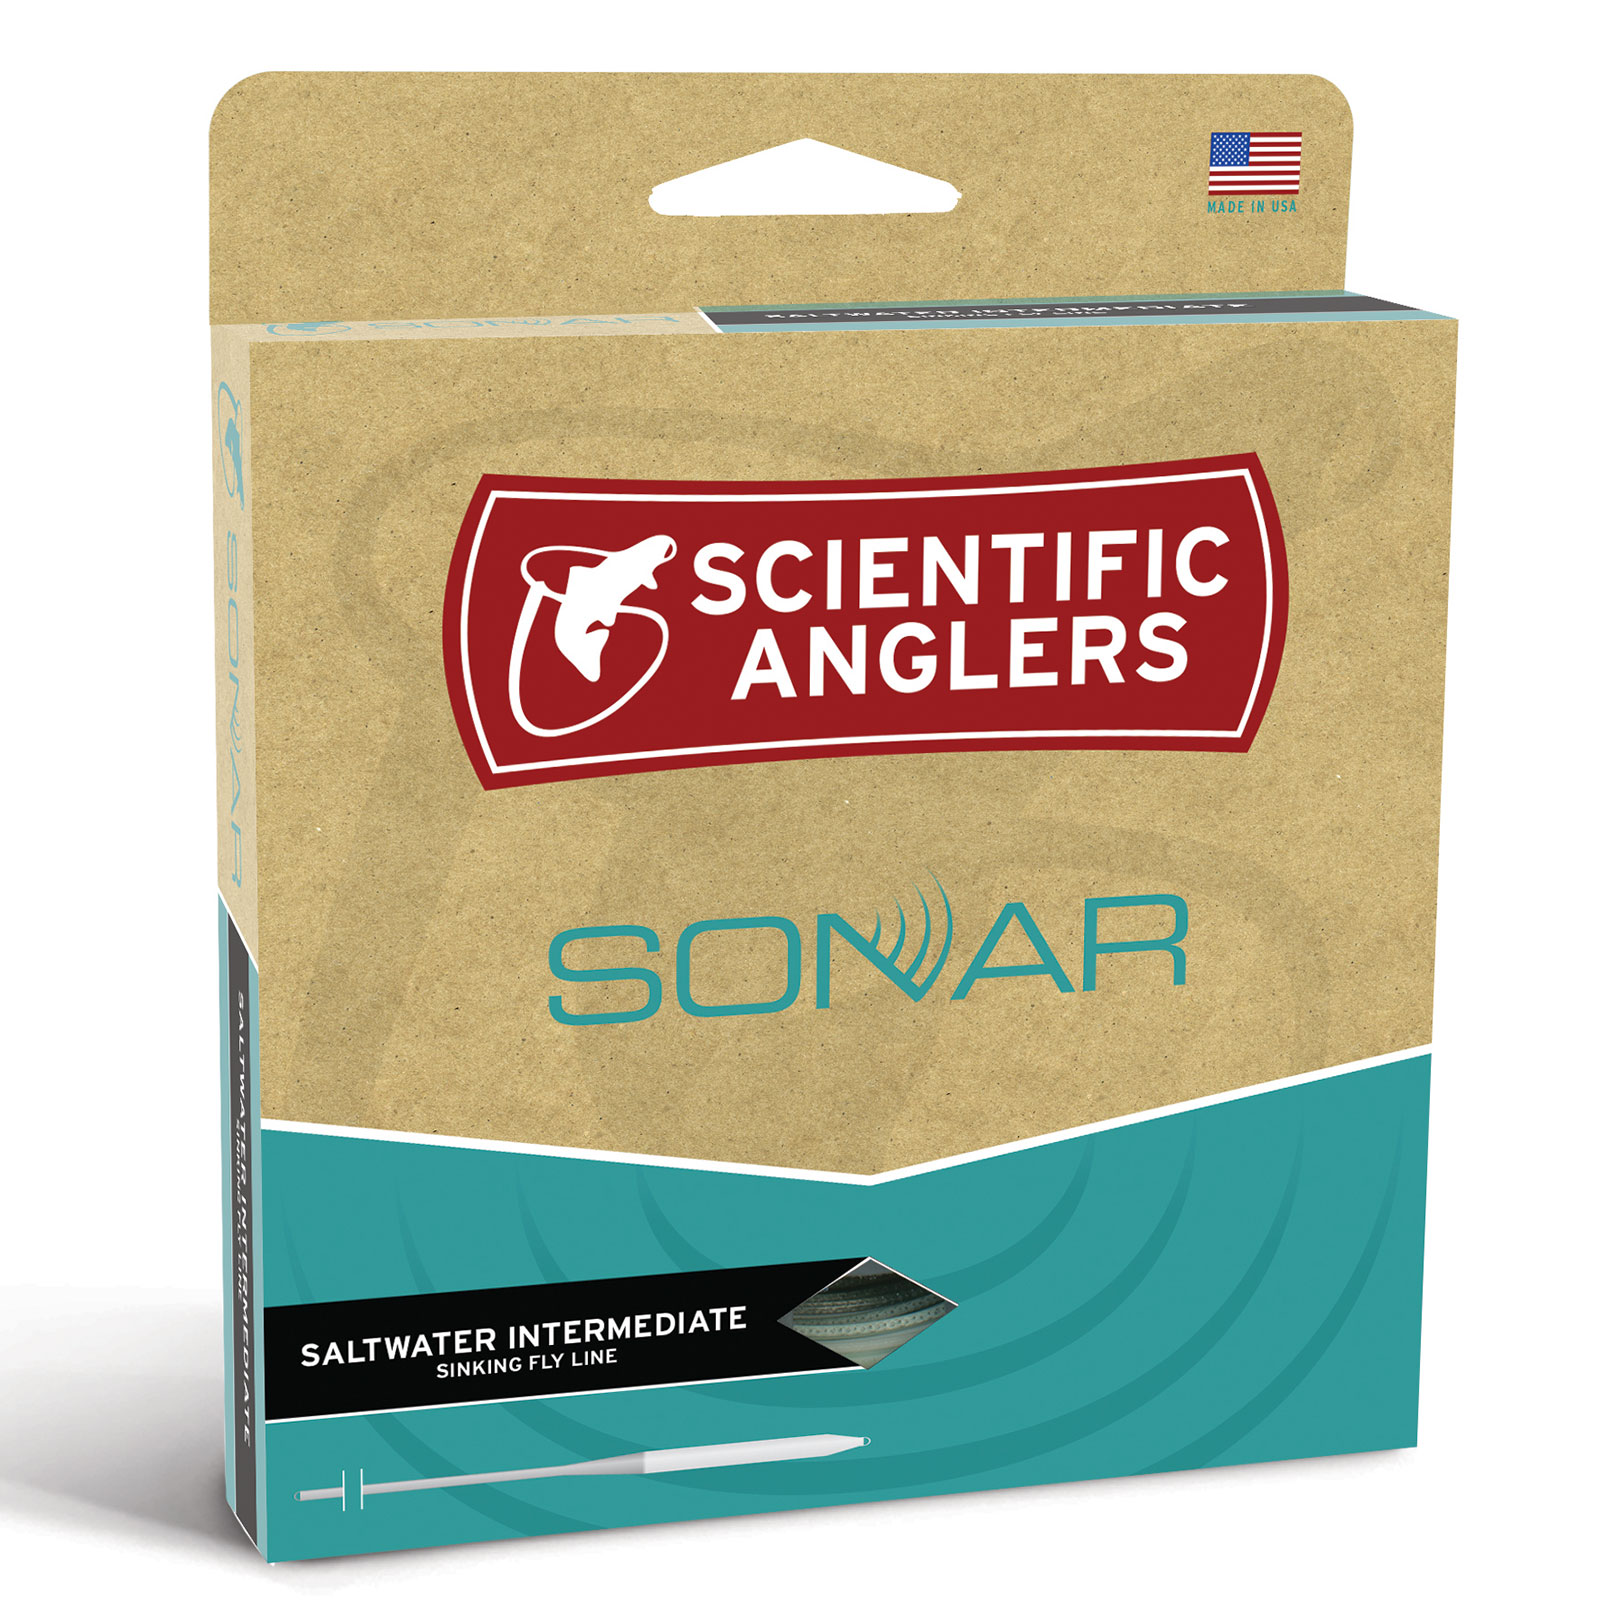 Scientific Anglers SONAR Saltwater Intermediate Weight Forward Fly Fishing Line by